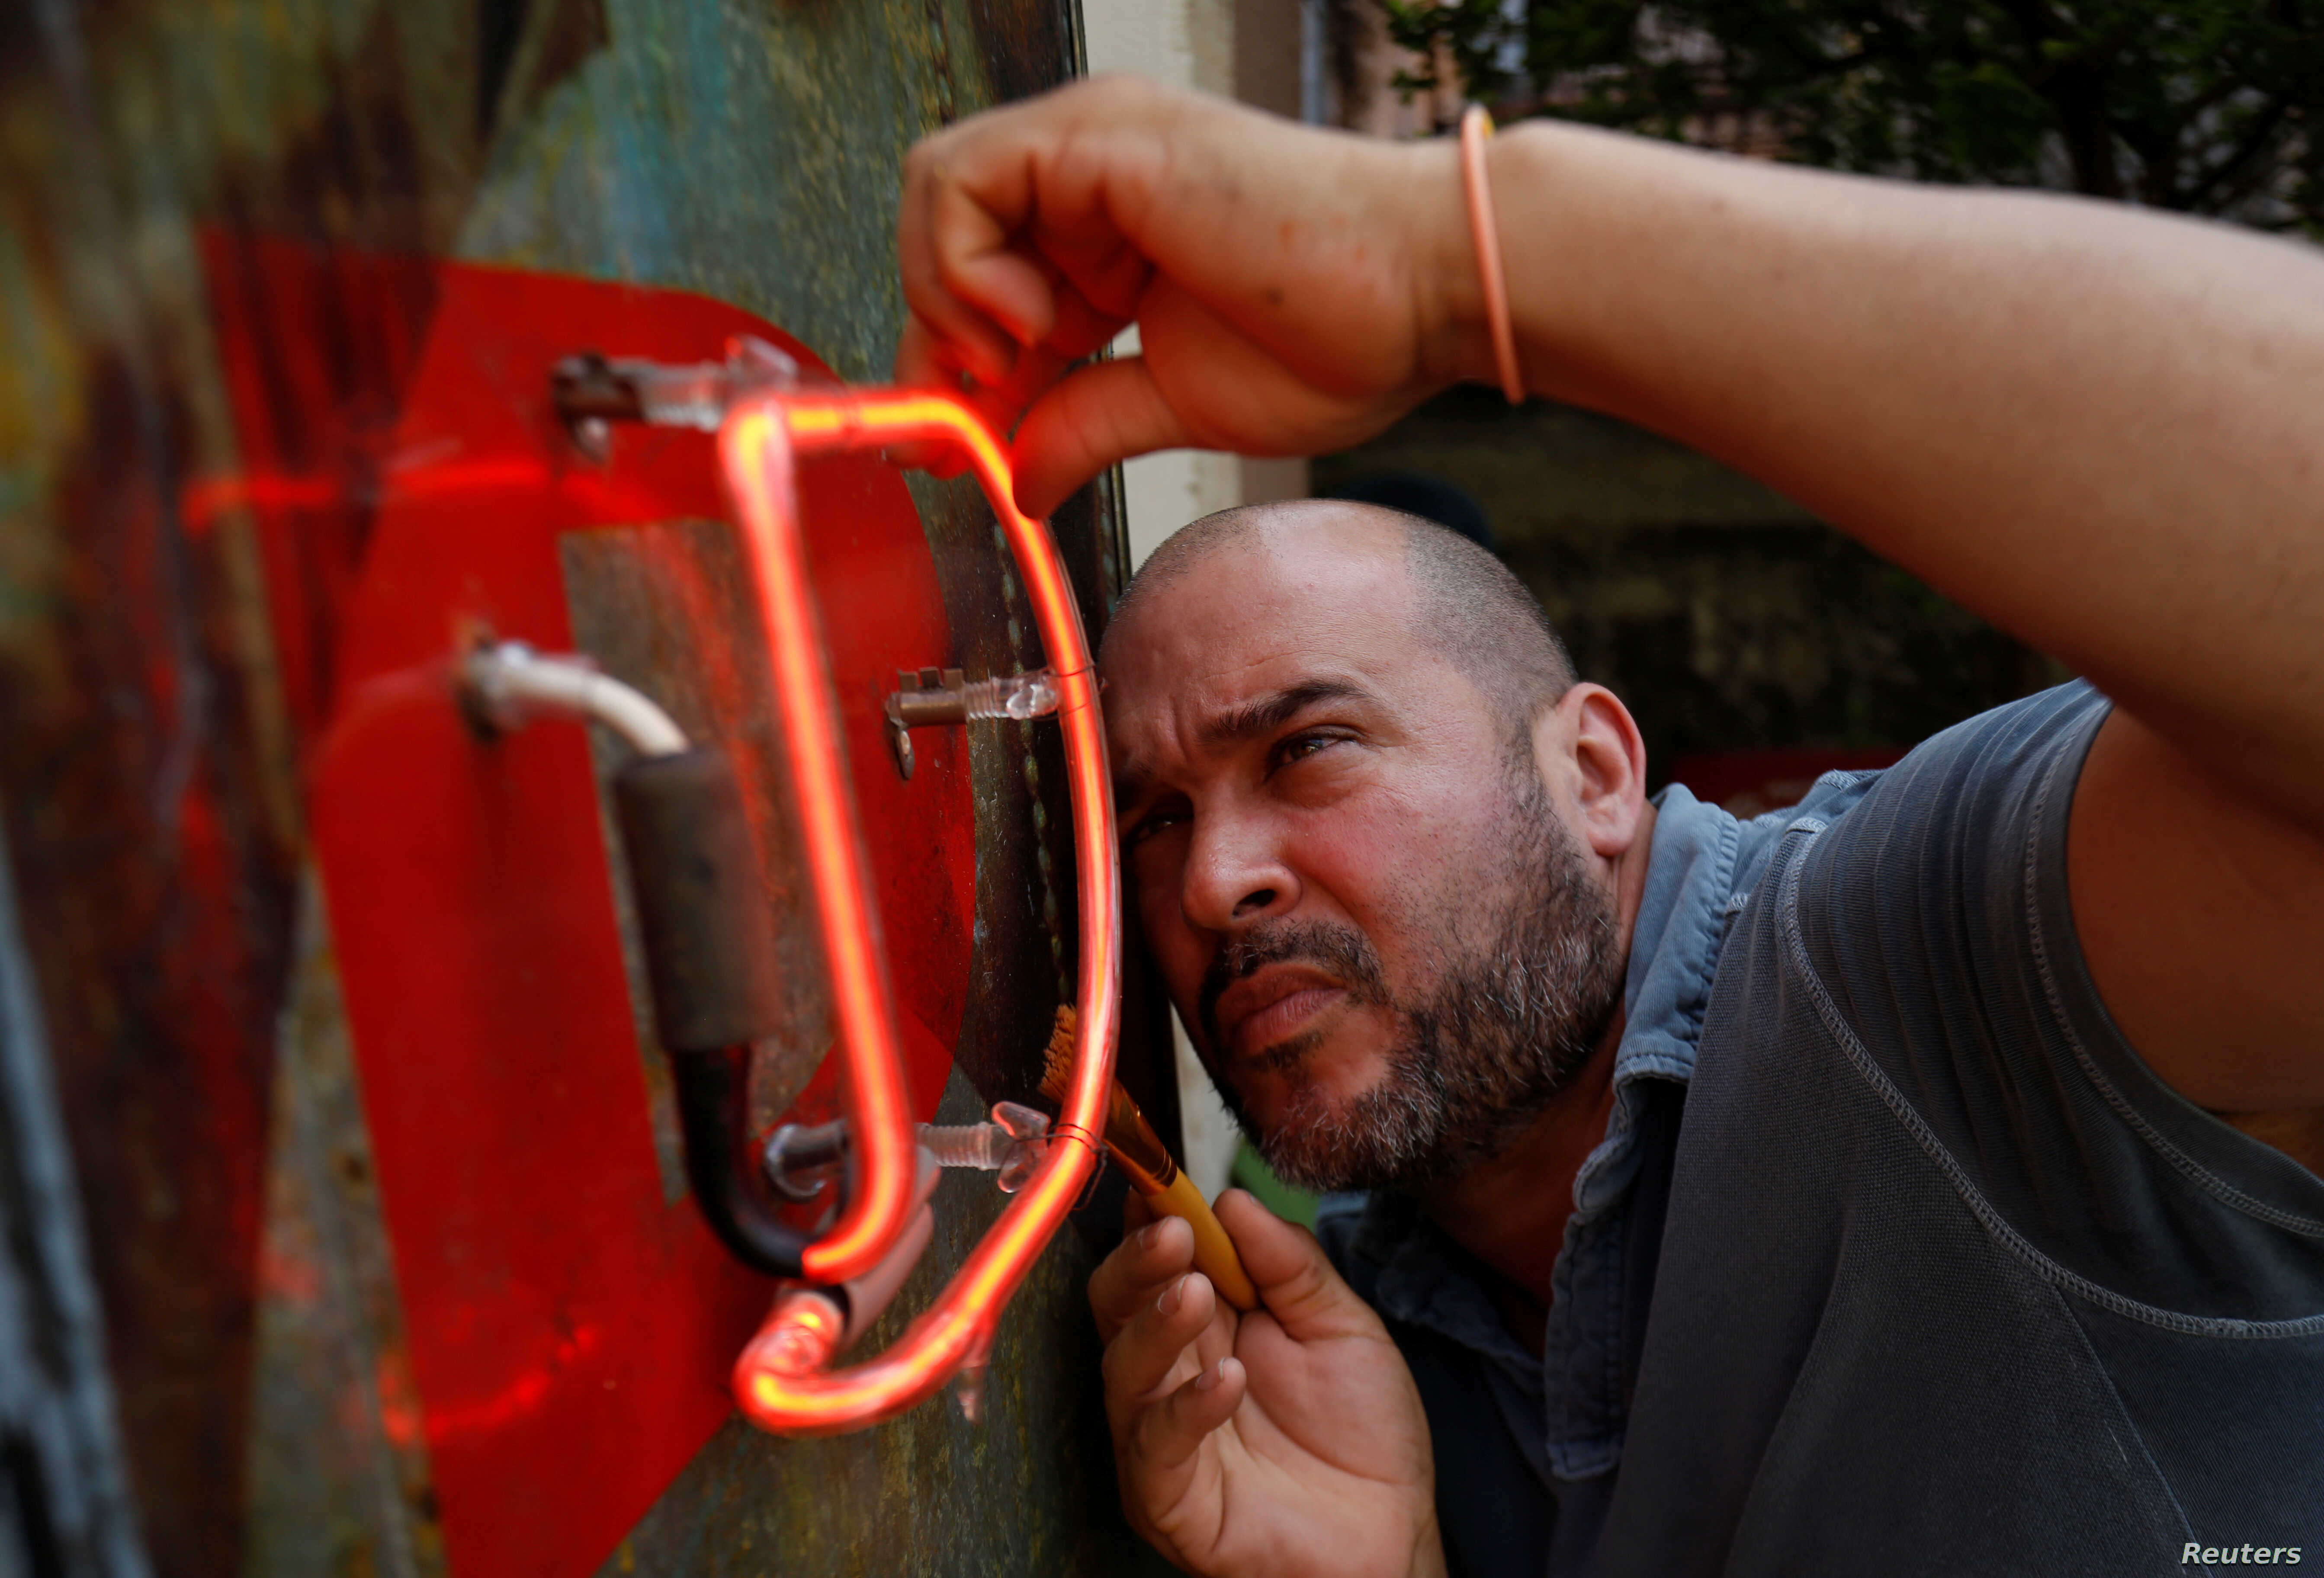 Cuban artist Kadir Lopez Nieves, who is restoring the vintage neon signs of the city, works in his workshop and gallery, in Havana, Cuba, Feb. 19, 2018.